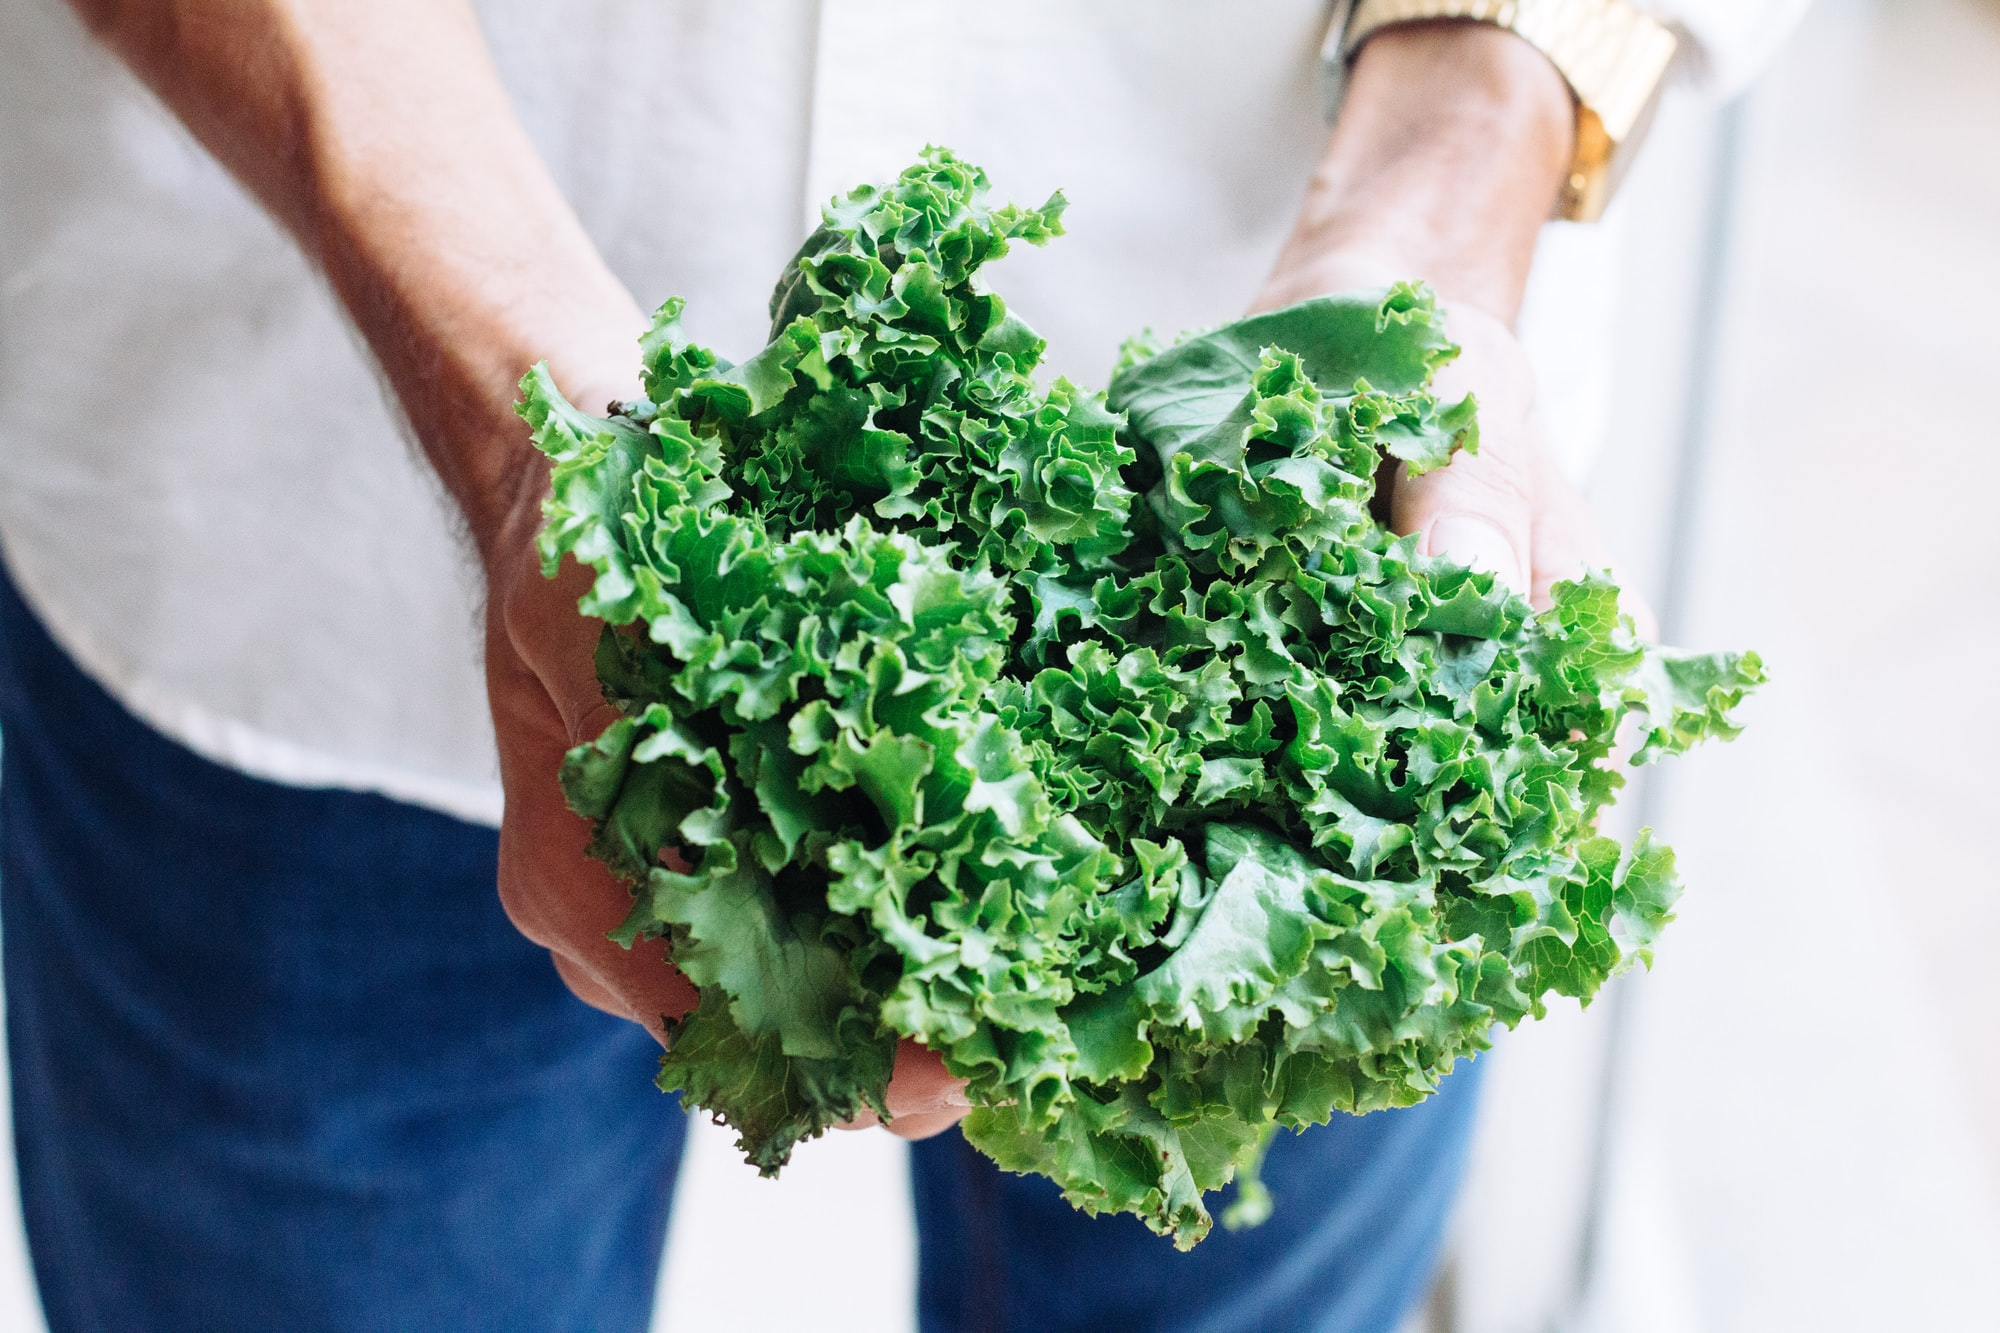 Leafy greens are a source of calcium and other nutrients by Adolfo Felix.